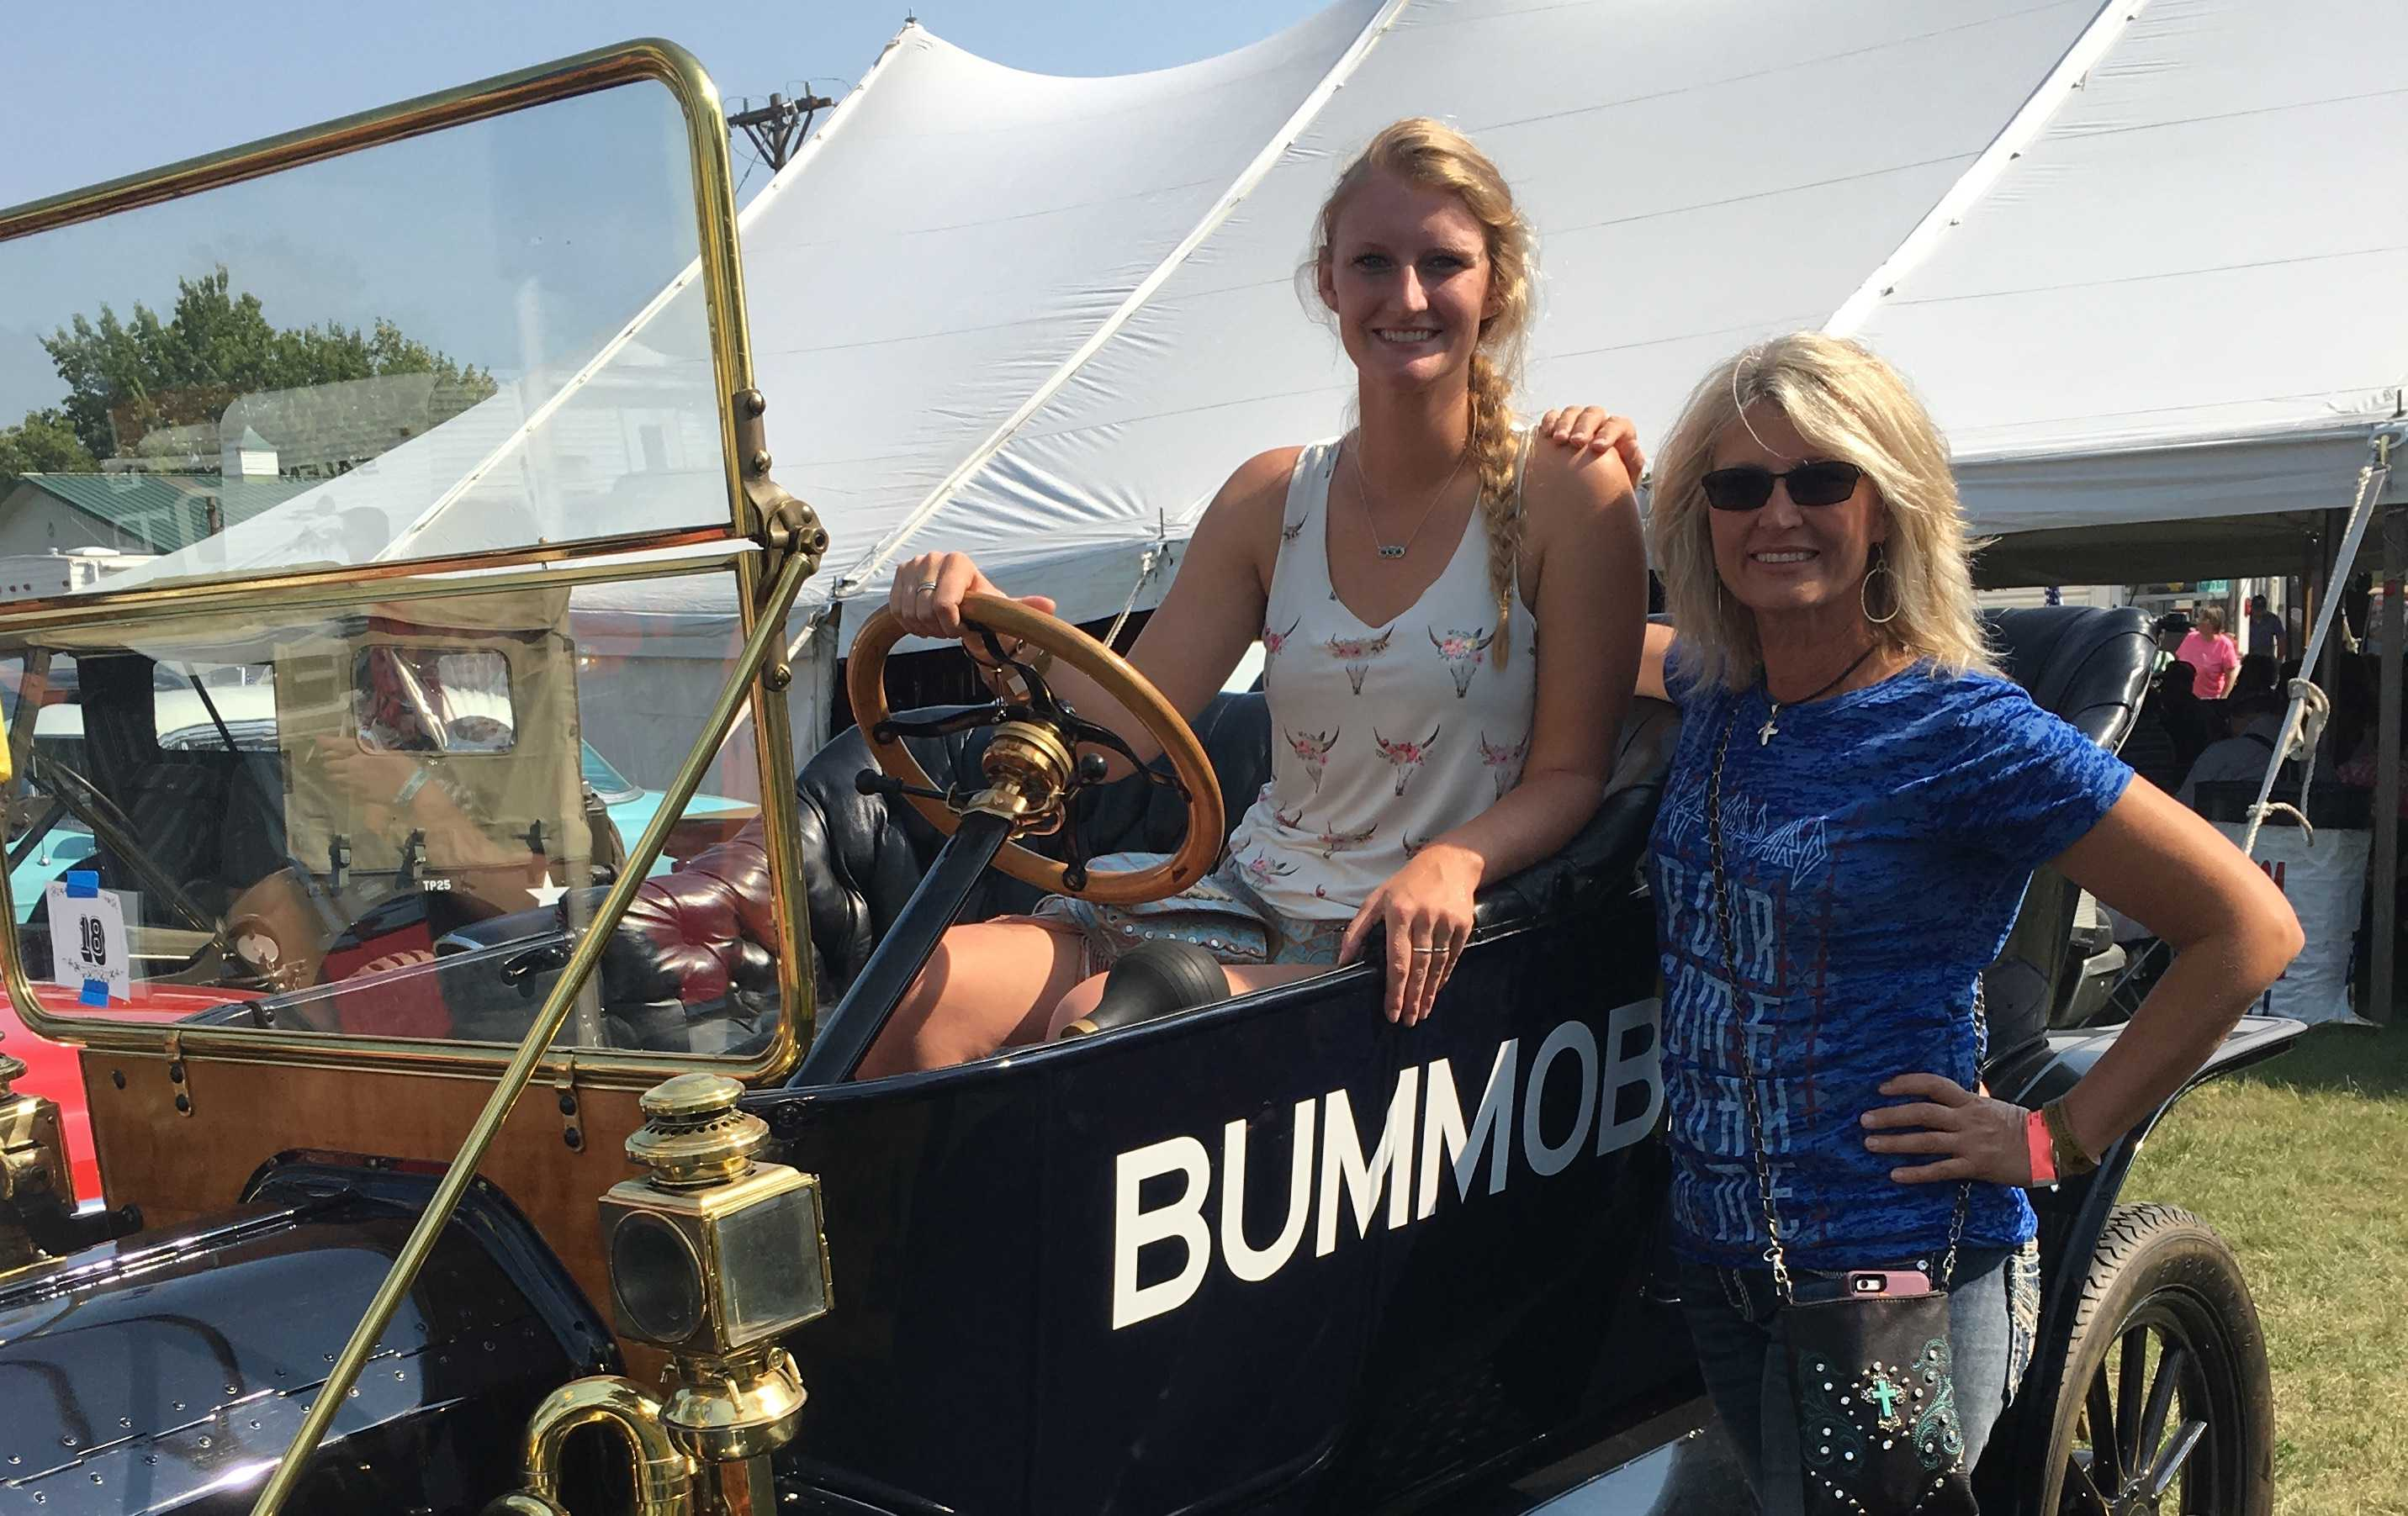 SUBMITTED PHOTO Mariah Kessler and her mother, Colette, pose with the Bummobile at the 2017 South Dakota State Fair Car Show.